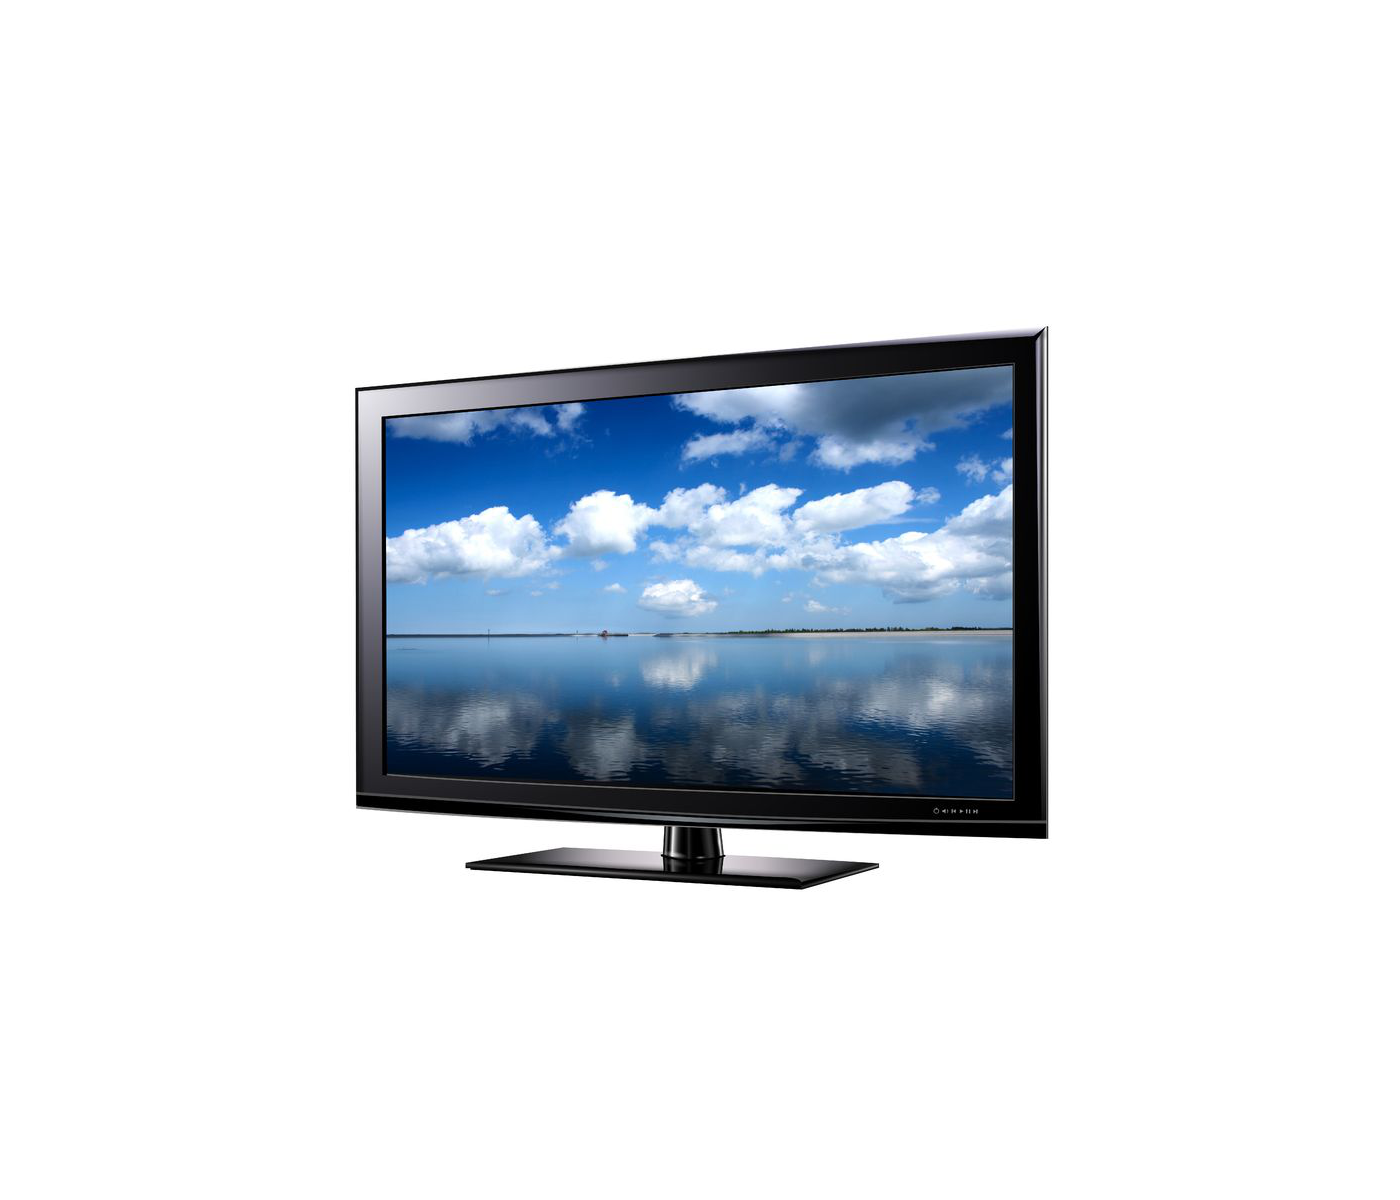 A definitive guide to choosing the most energy efficient television